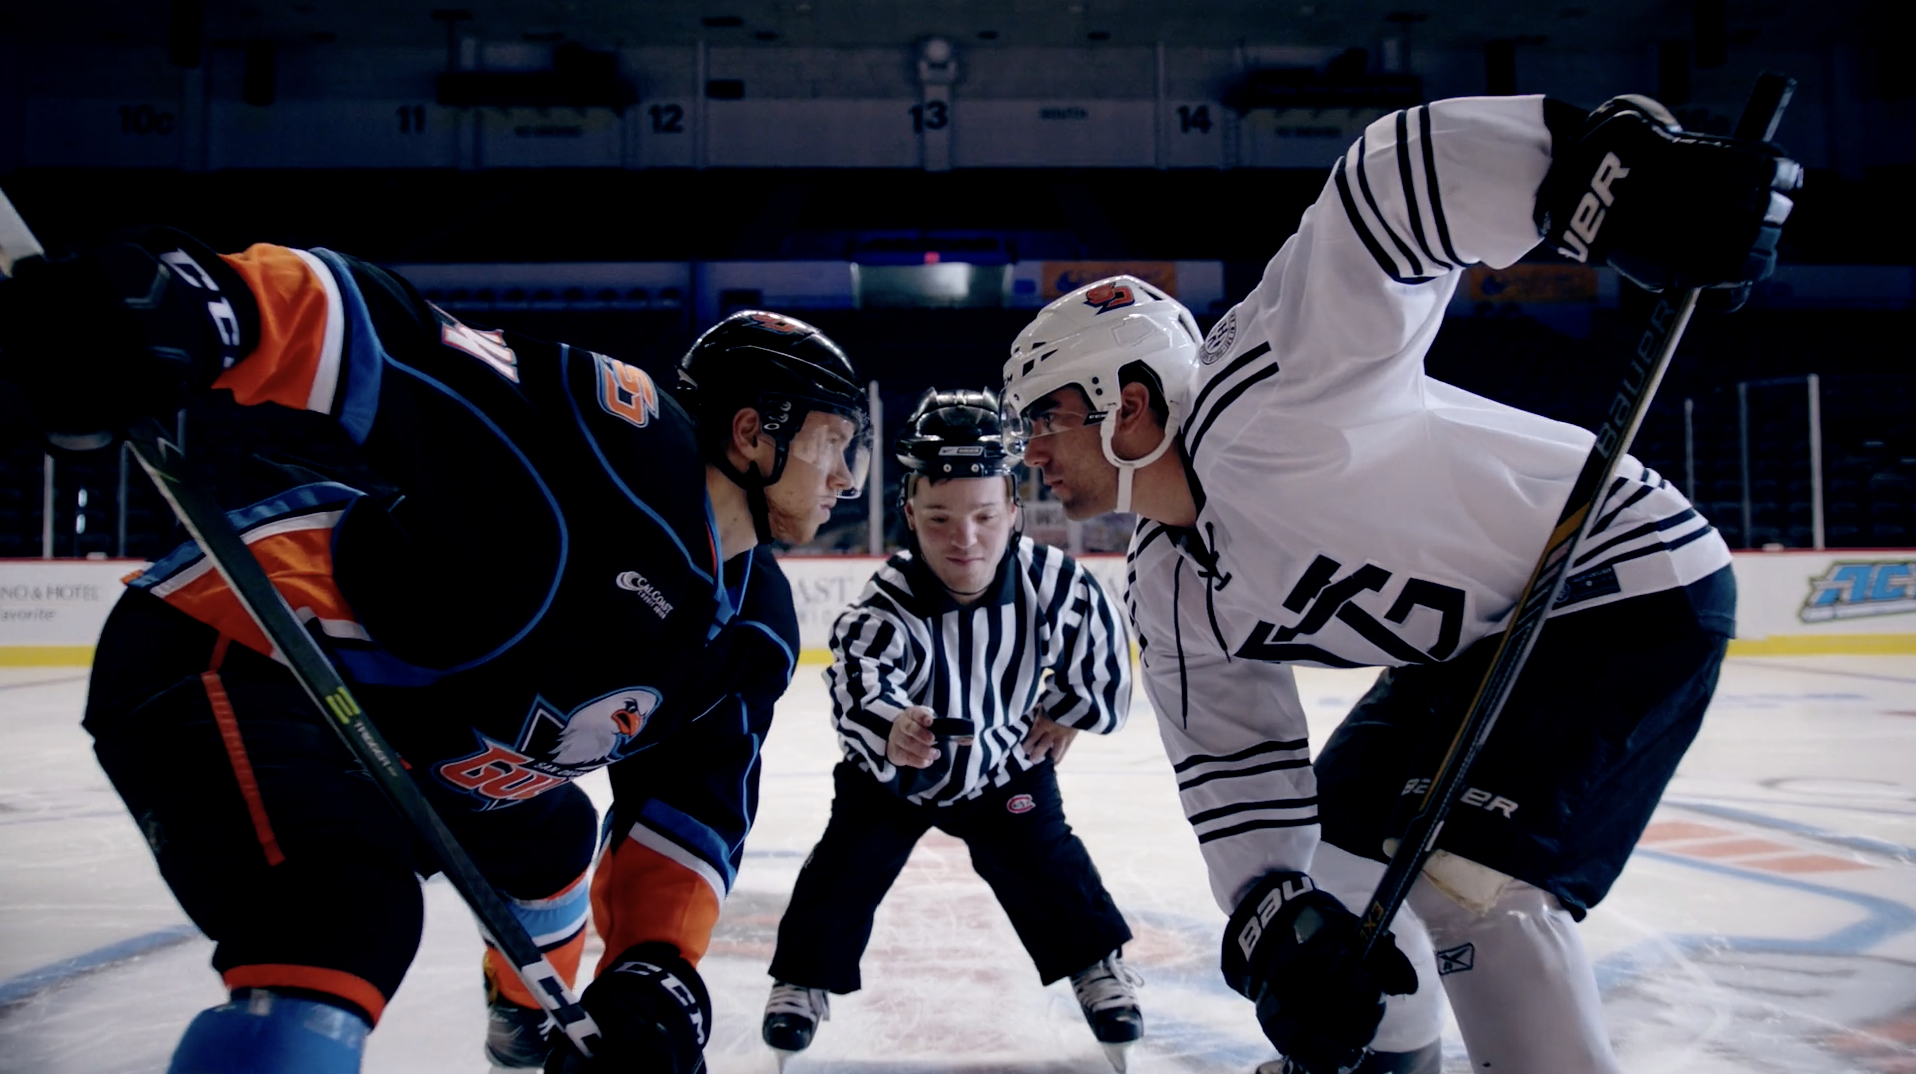 CINEMATOGRAPHER CESAR ANDRE GULLS ON ICE FRAME 1.png